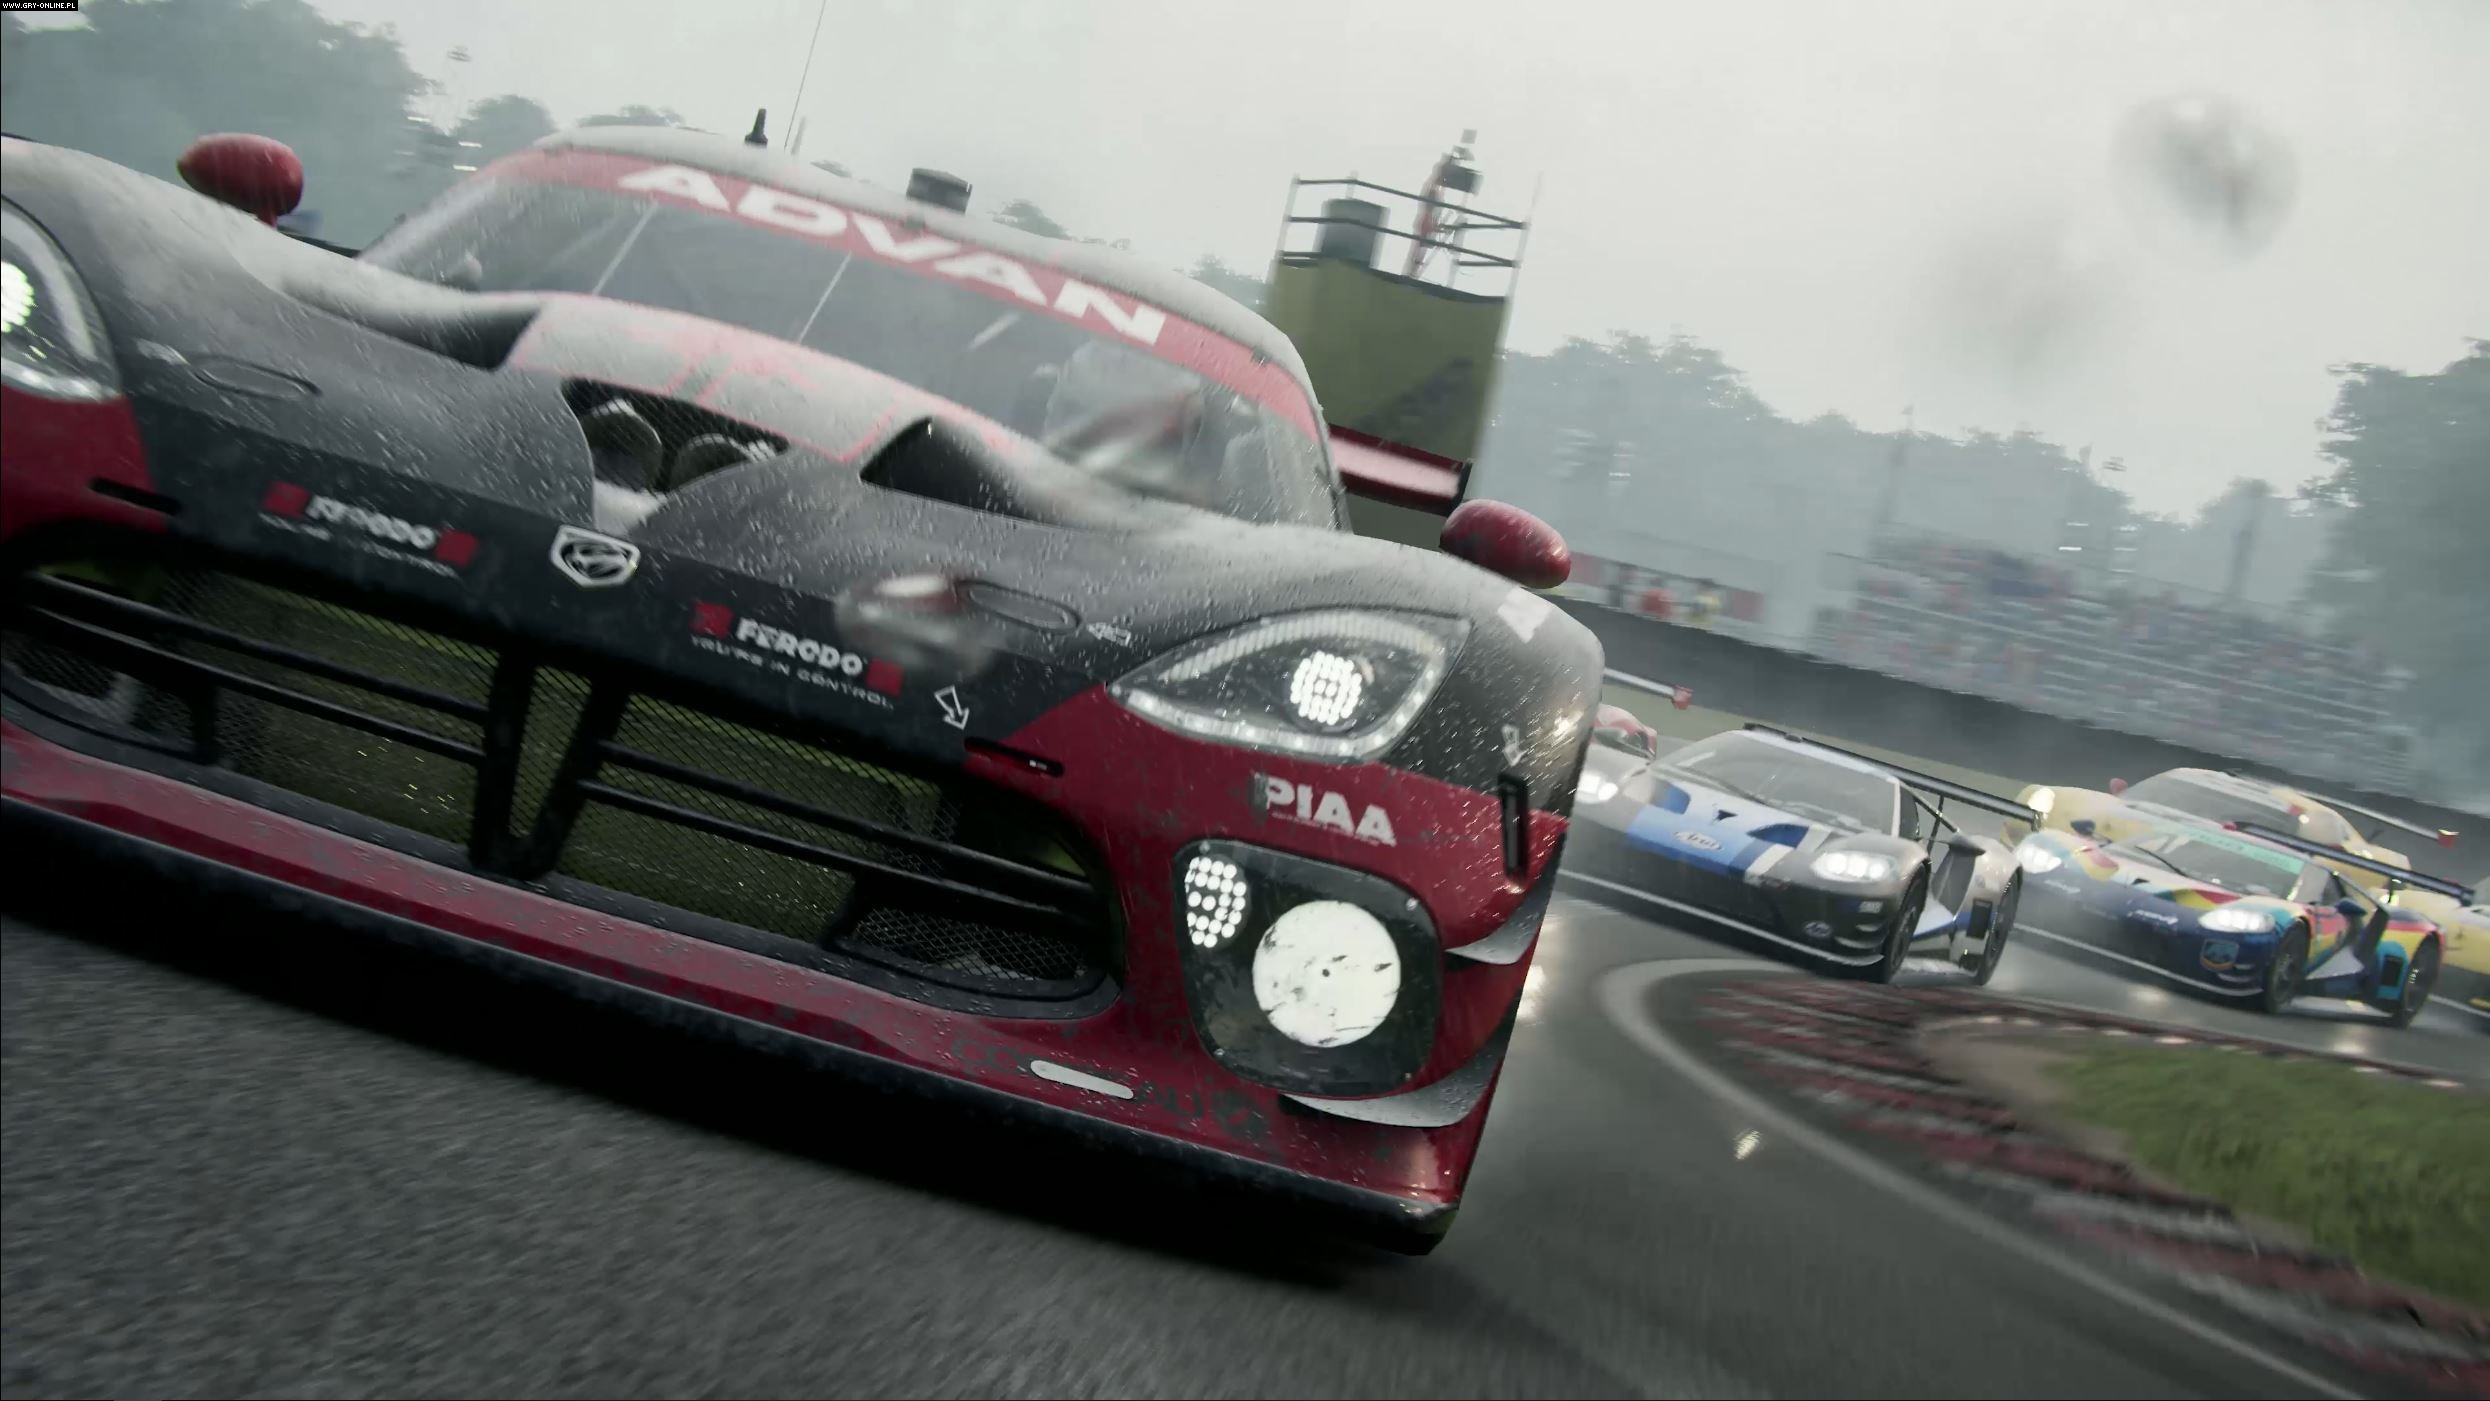 GRID PC, PS4, XONE Games Image 23/49, Codemasters Software